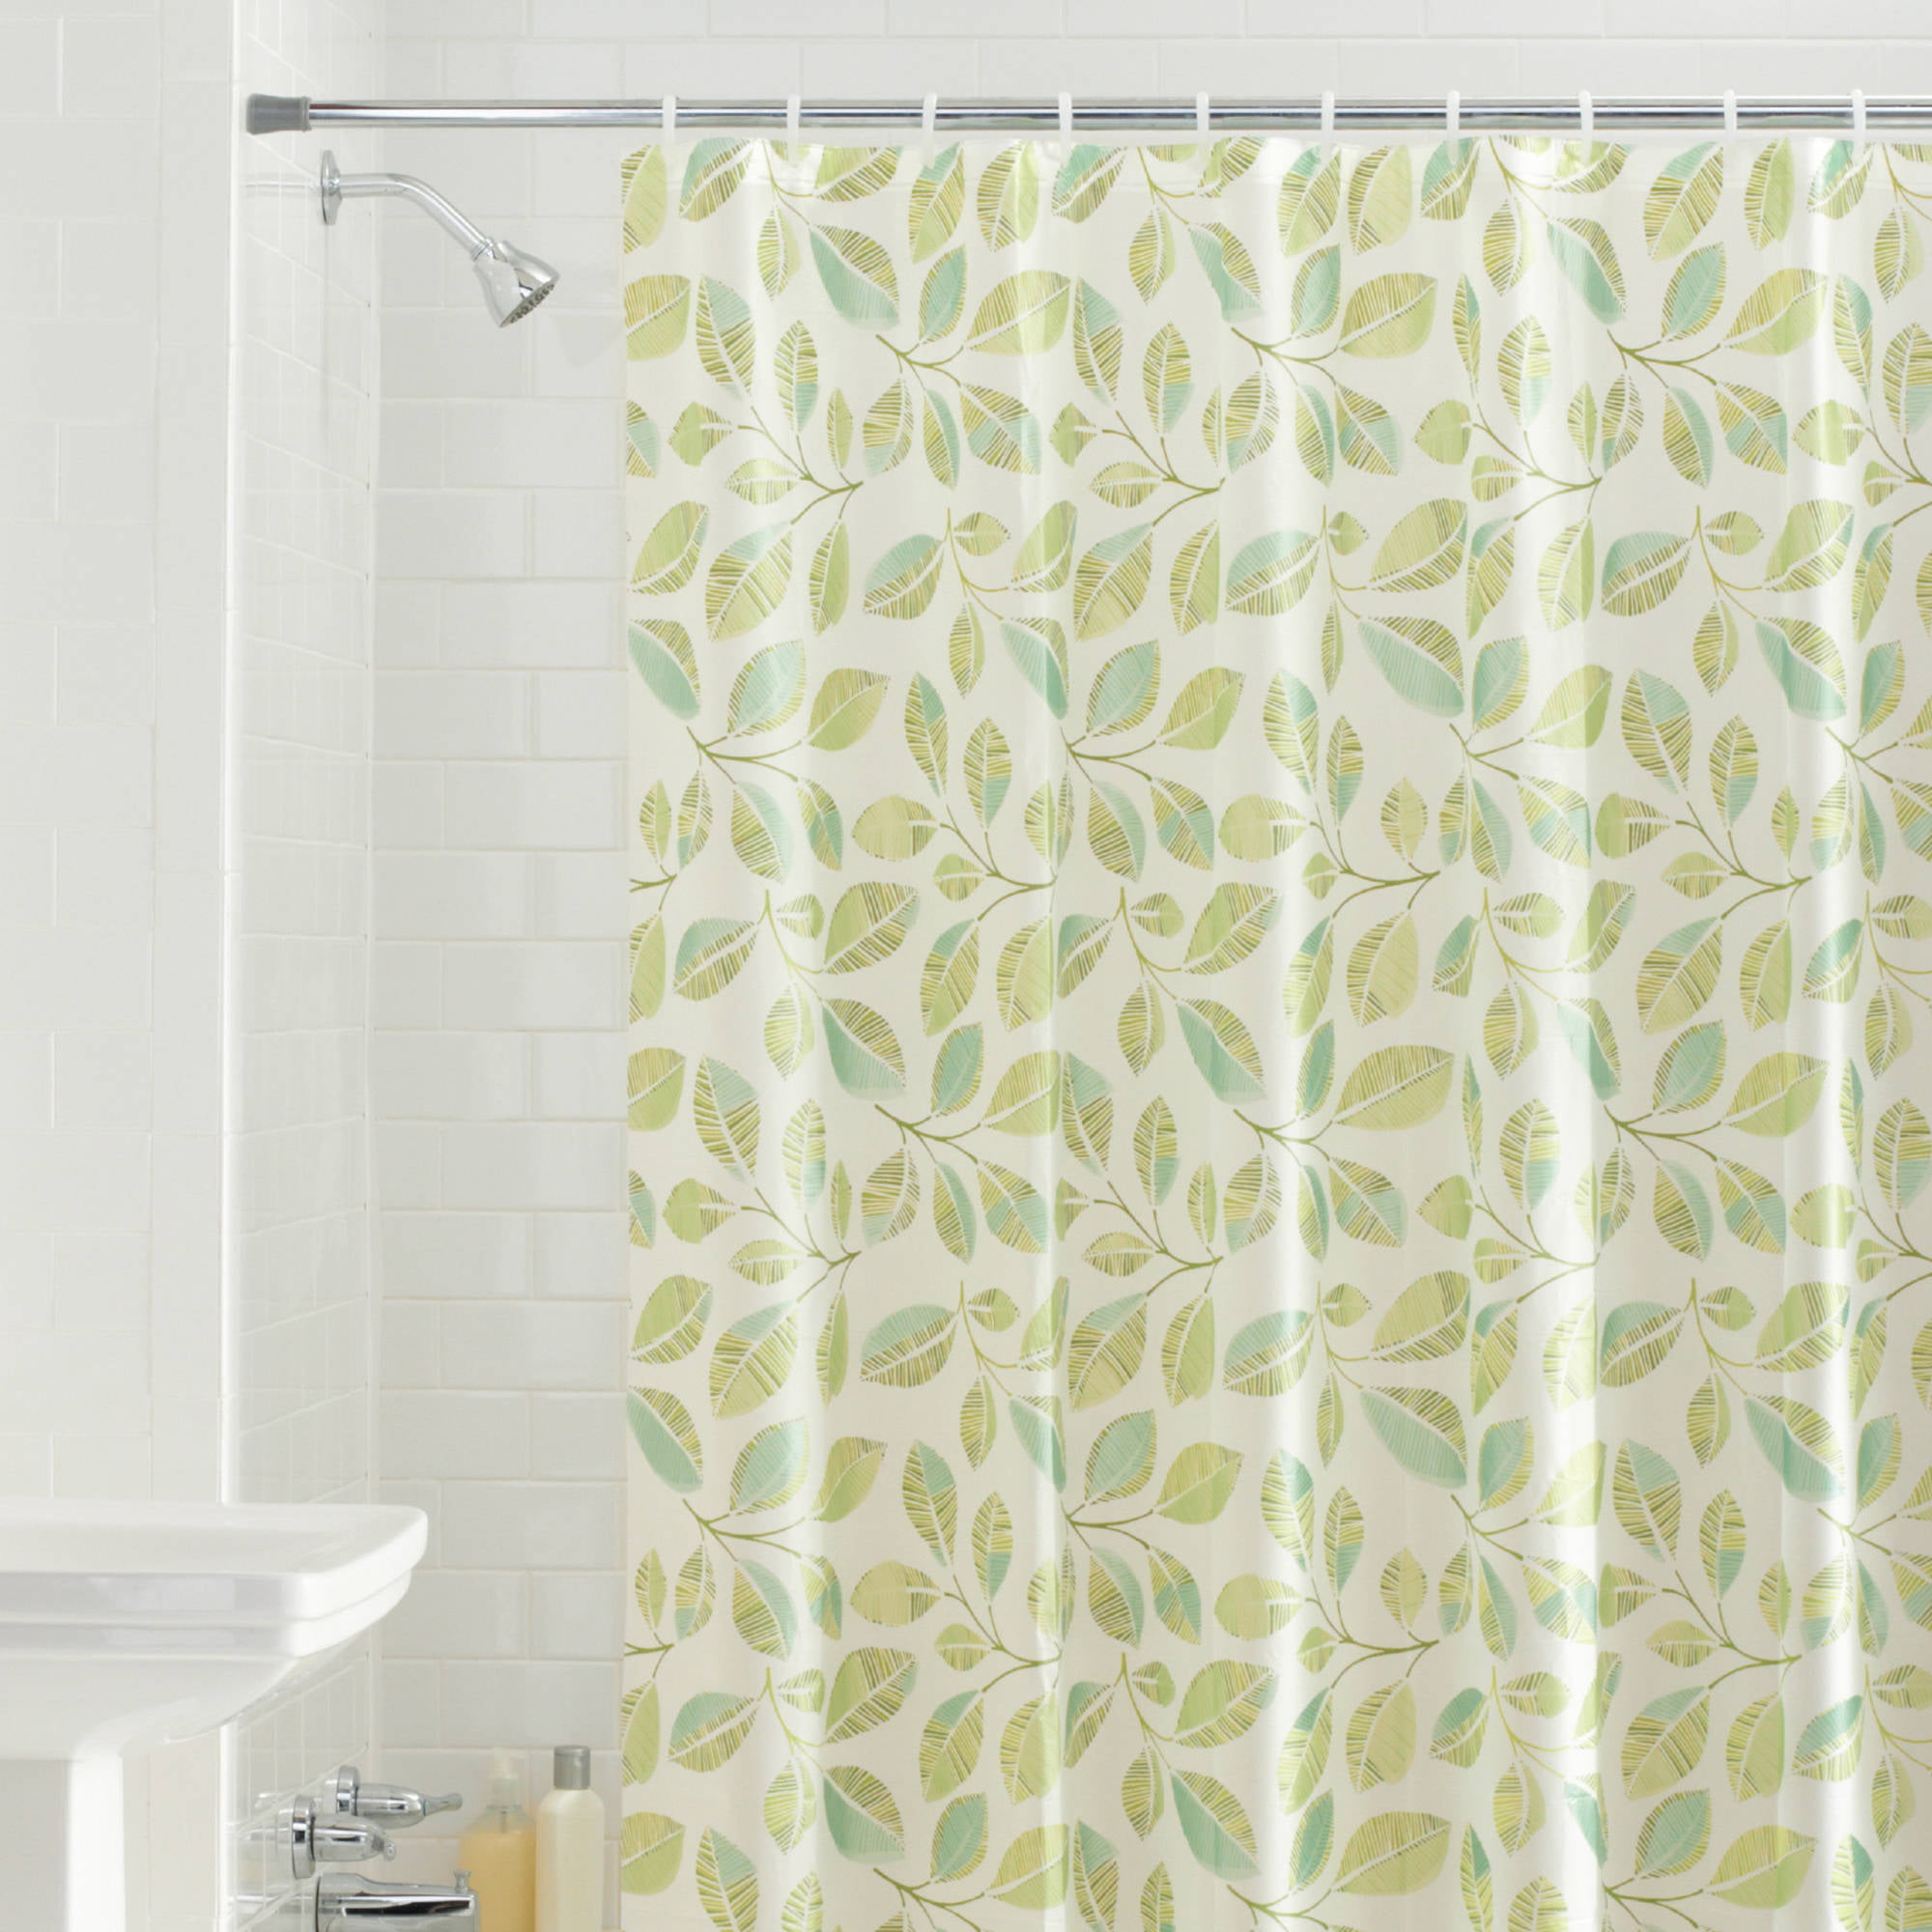 Shadow Leaves Shower Curtain And Bathroom Accessories Separates Jacquard Bath Towel